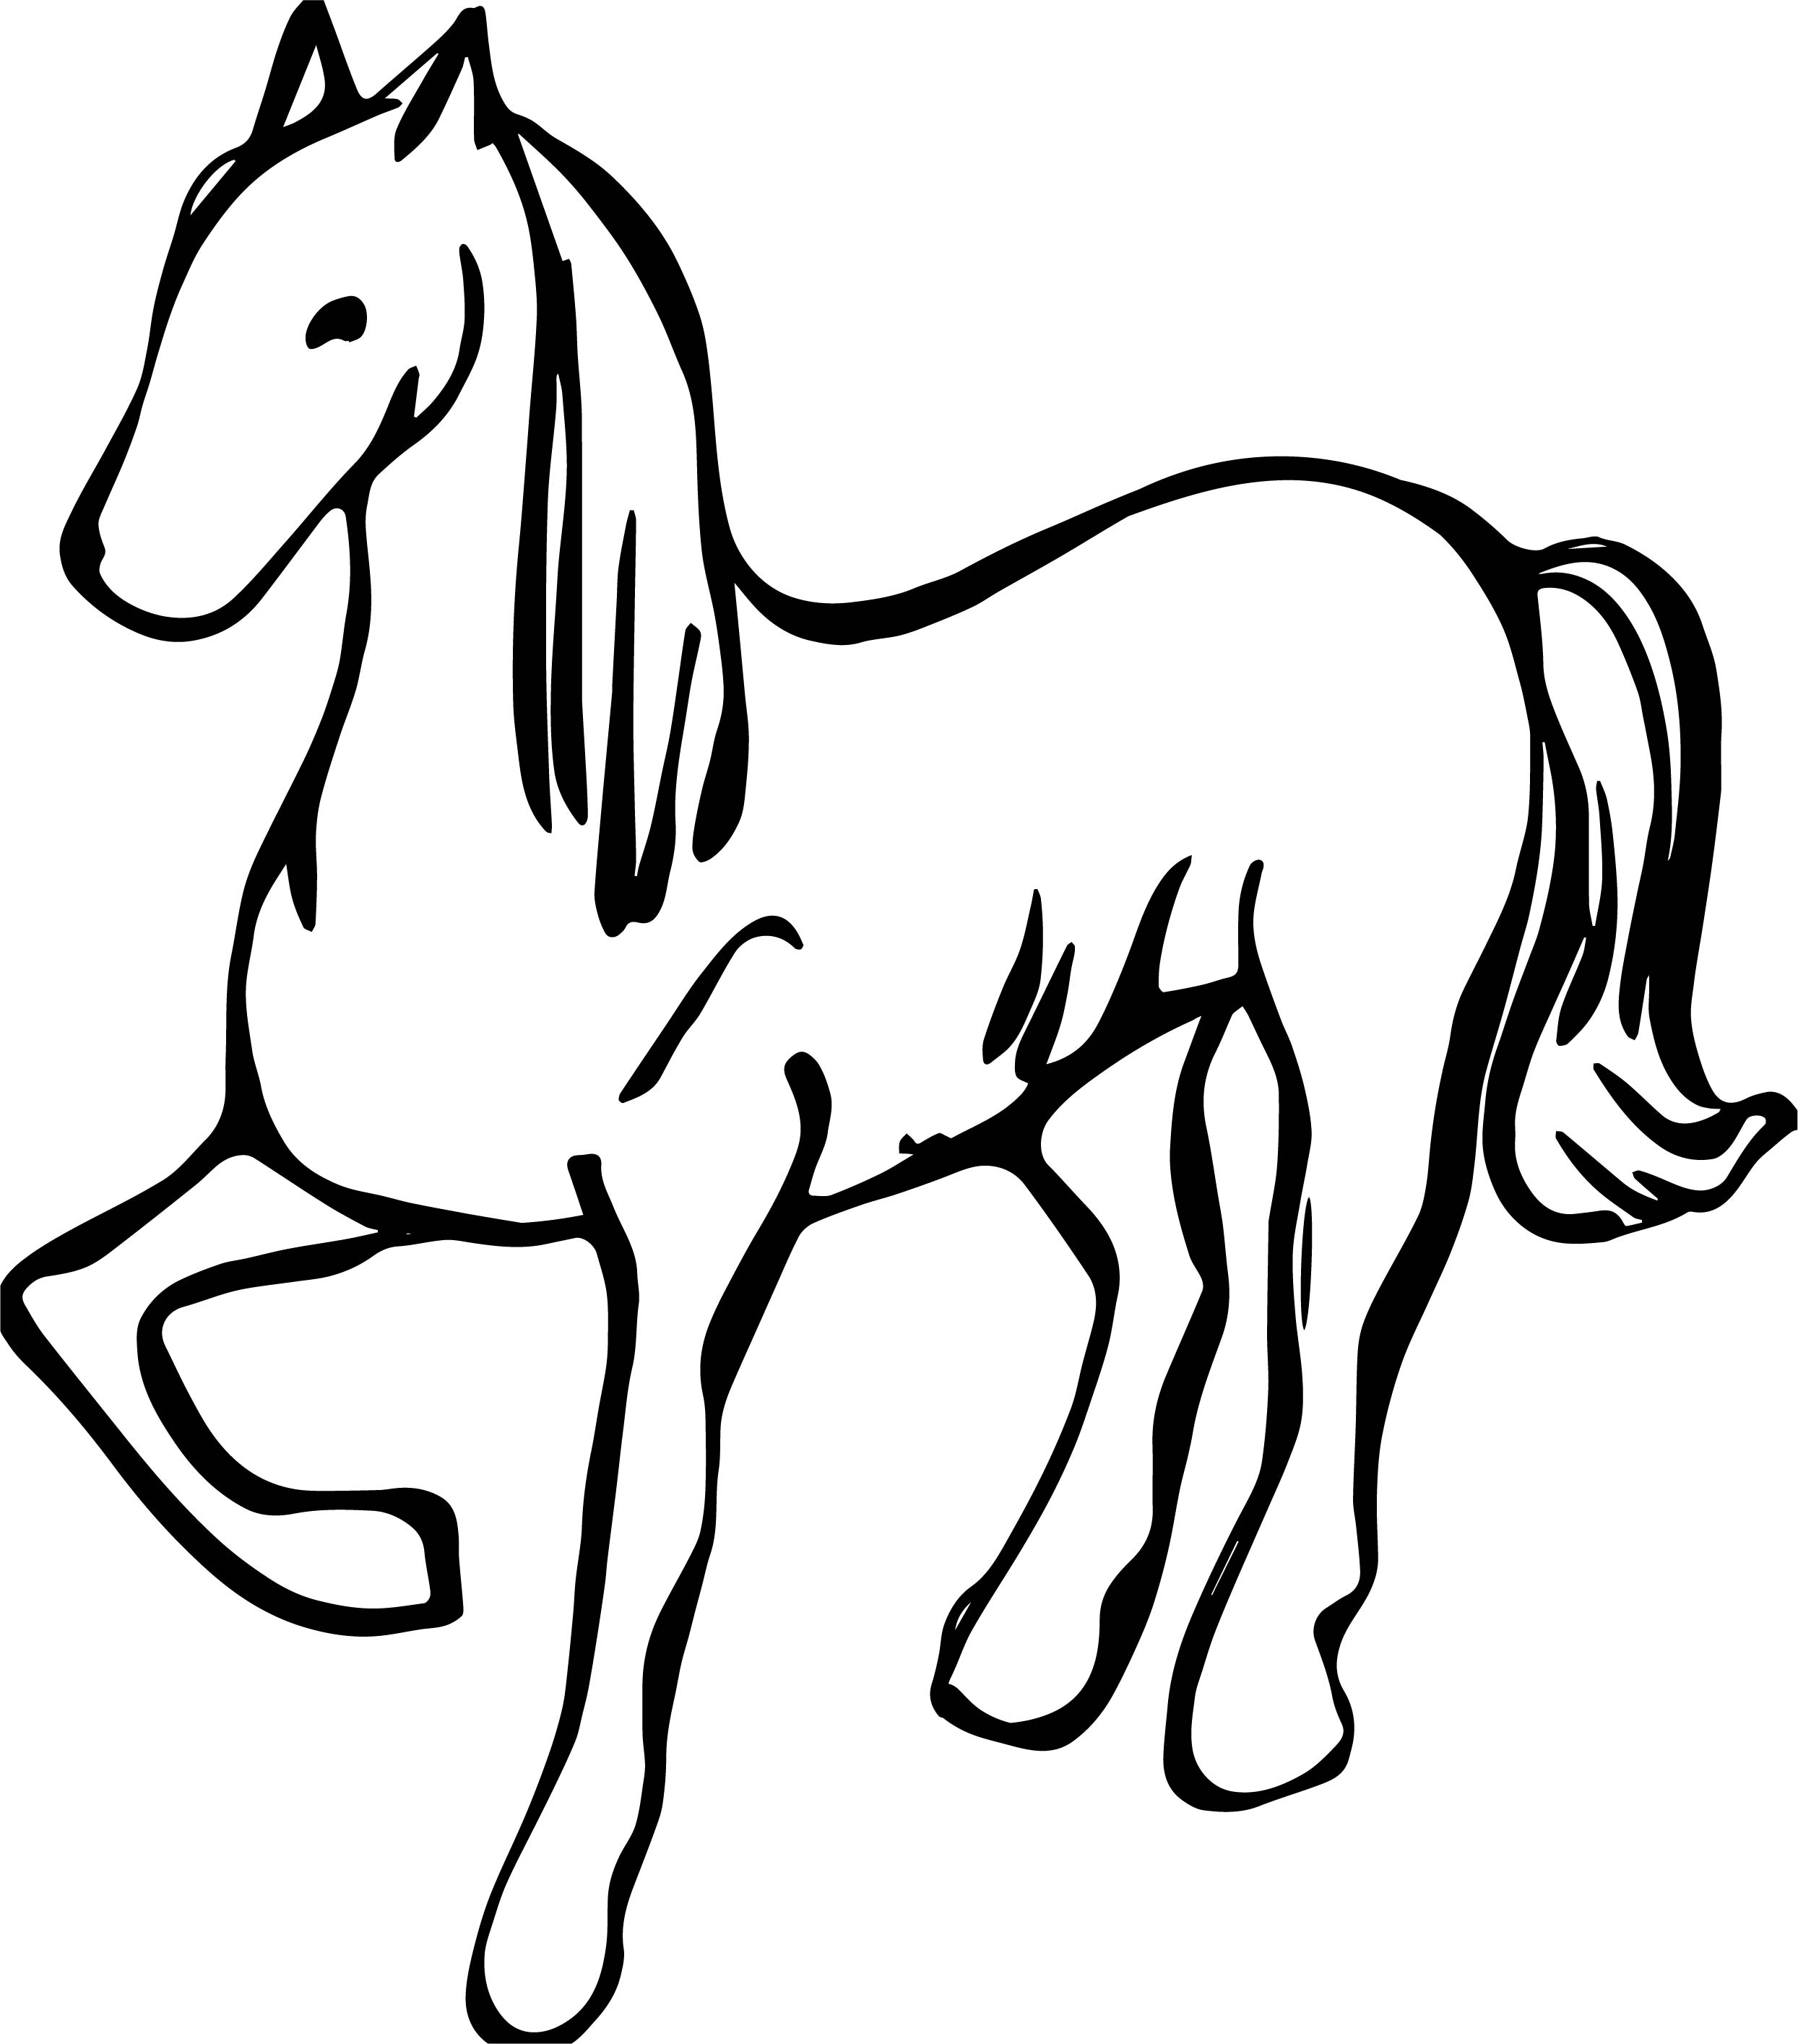 arabian horse coloring pages - arabian horse silhouette coloring page